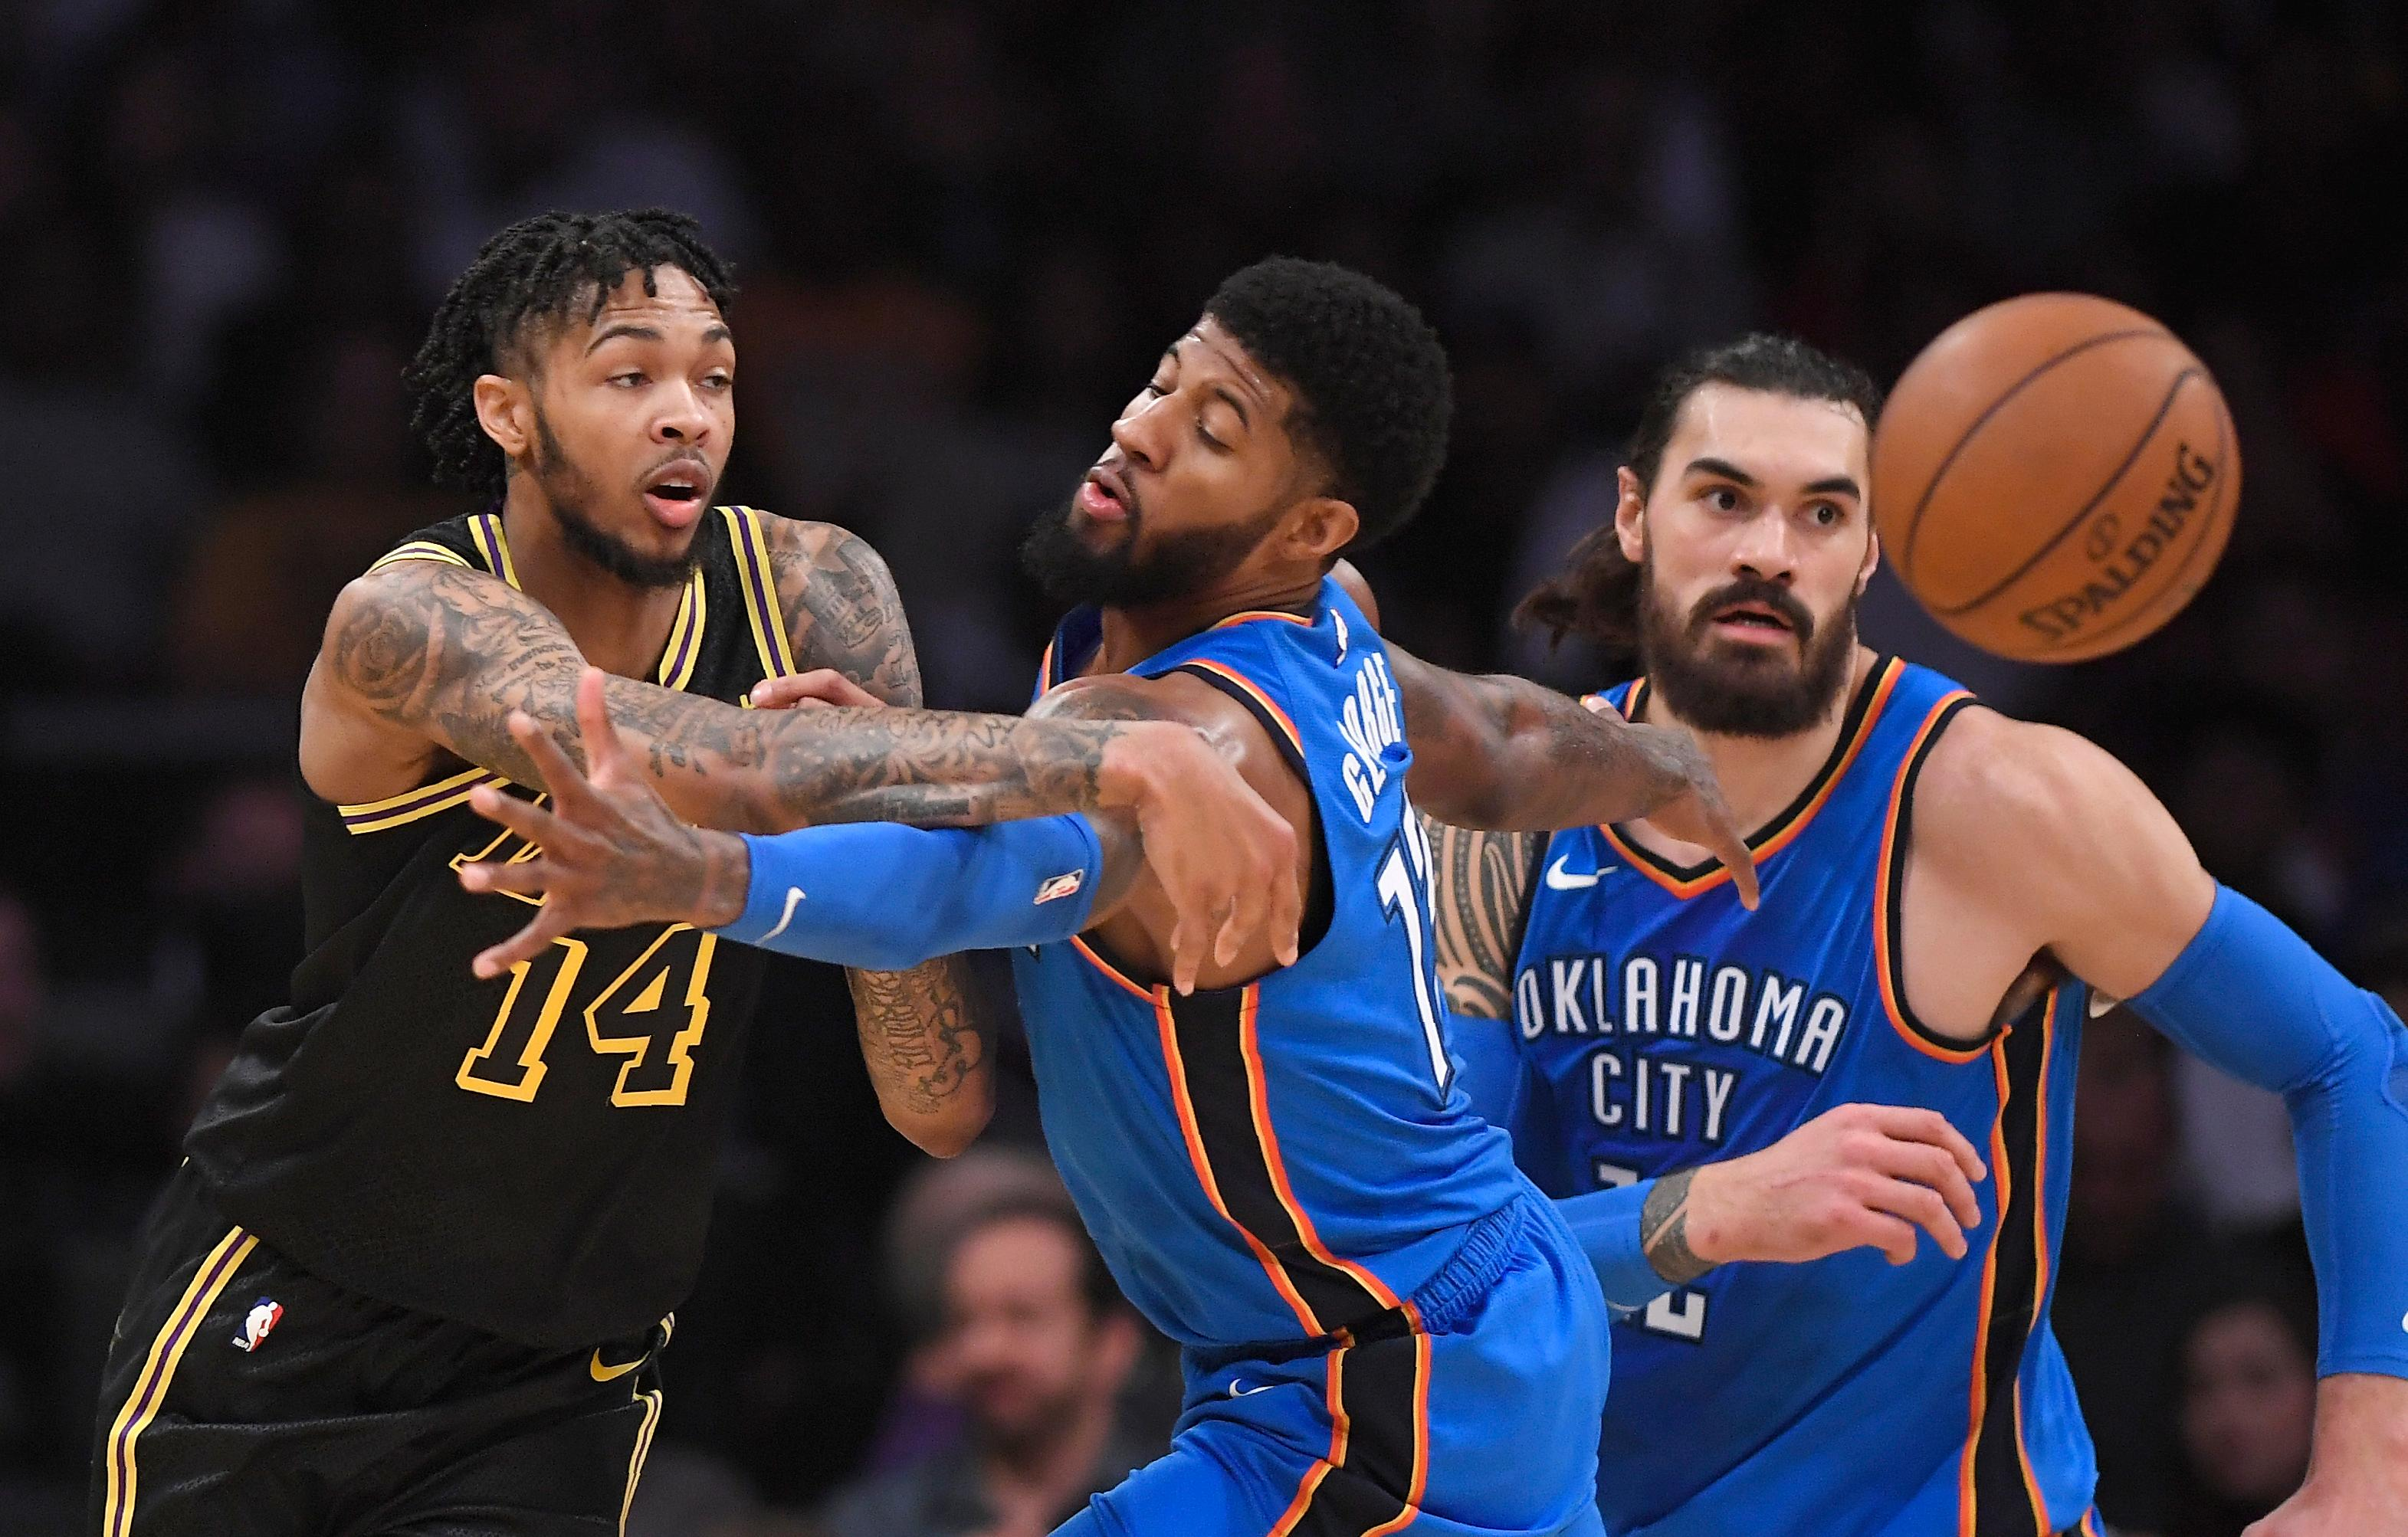 Los Angeles Lakers forward Brandon Ingram, left, passes the ball past Oklahoma City Thunder forward Paul George, center, and center Steven Adams, of New Zealand, during the first half of an NBA basketball game, Thursday, Feb. 8, 2018, in Los Angeles. (AP Photo/Mark J. Terrill)